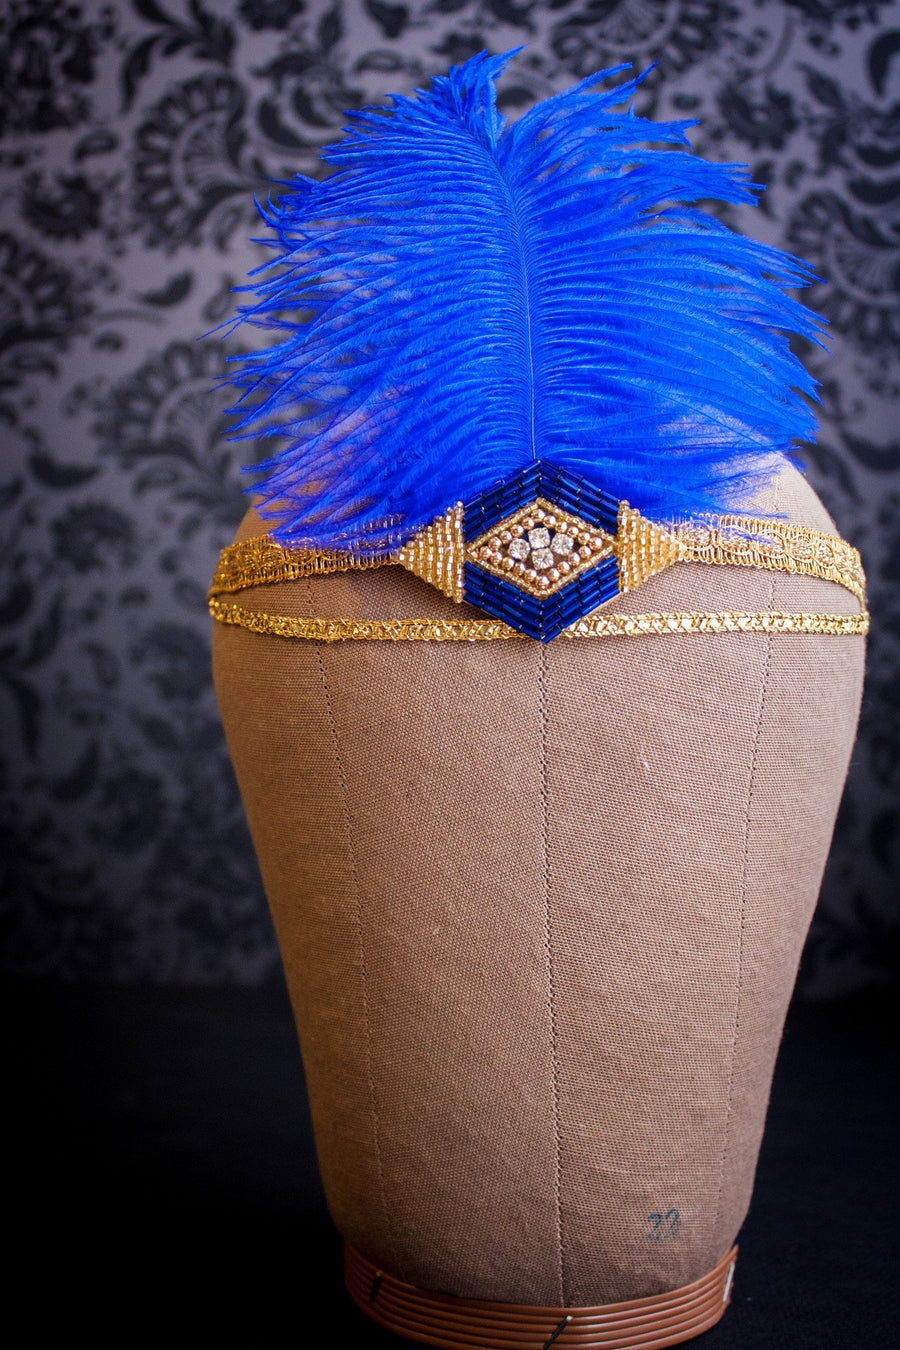 Royal Blue Aigrette Flapper Headpiece - Style #453